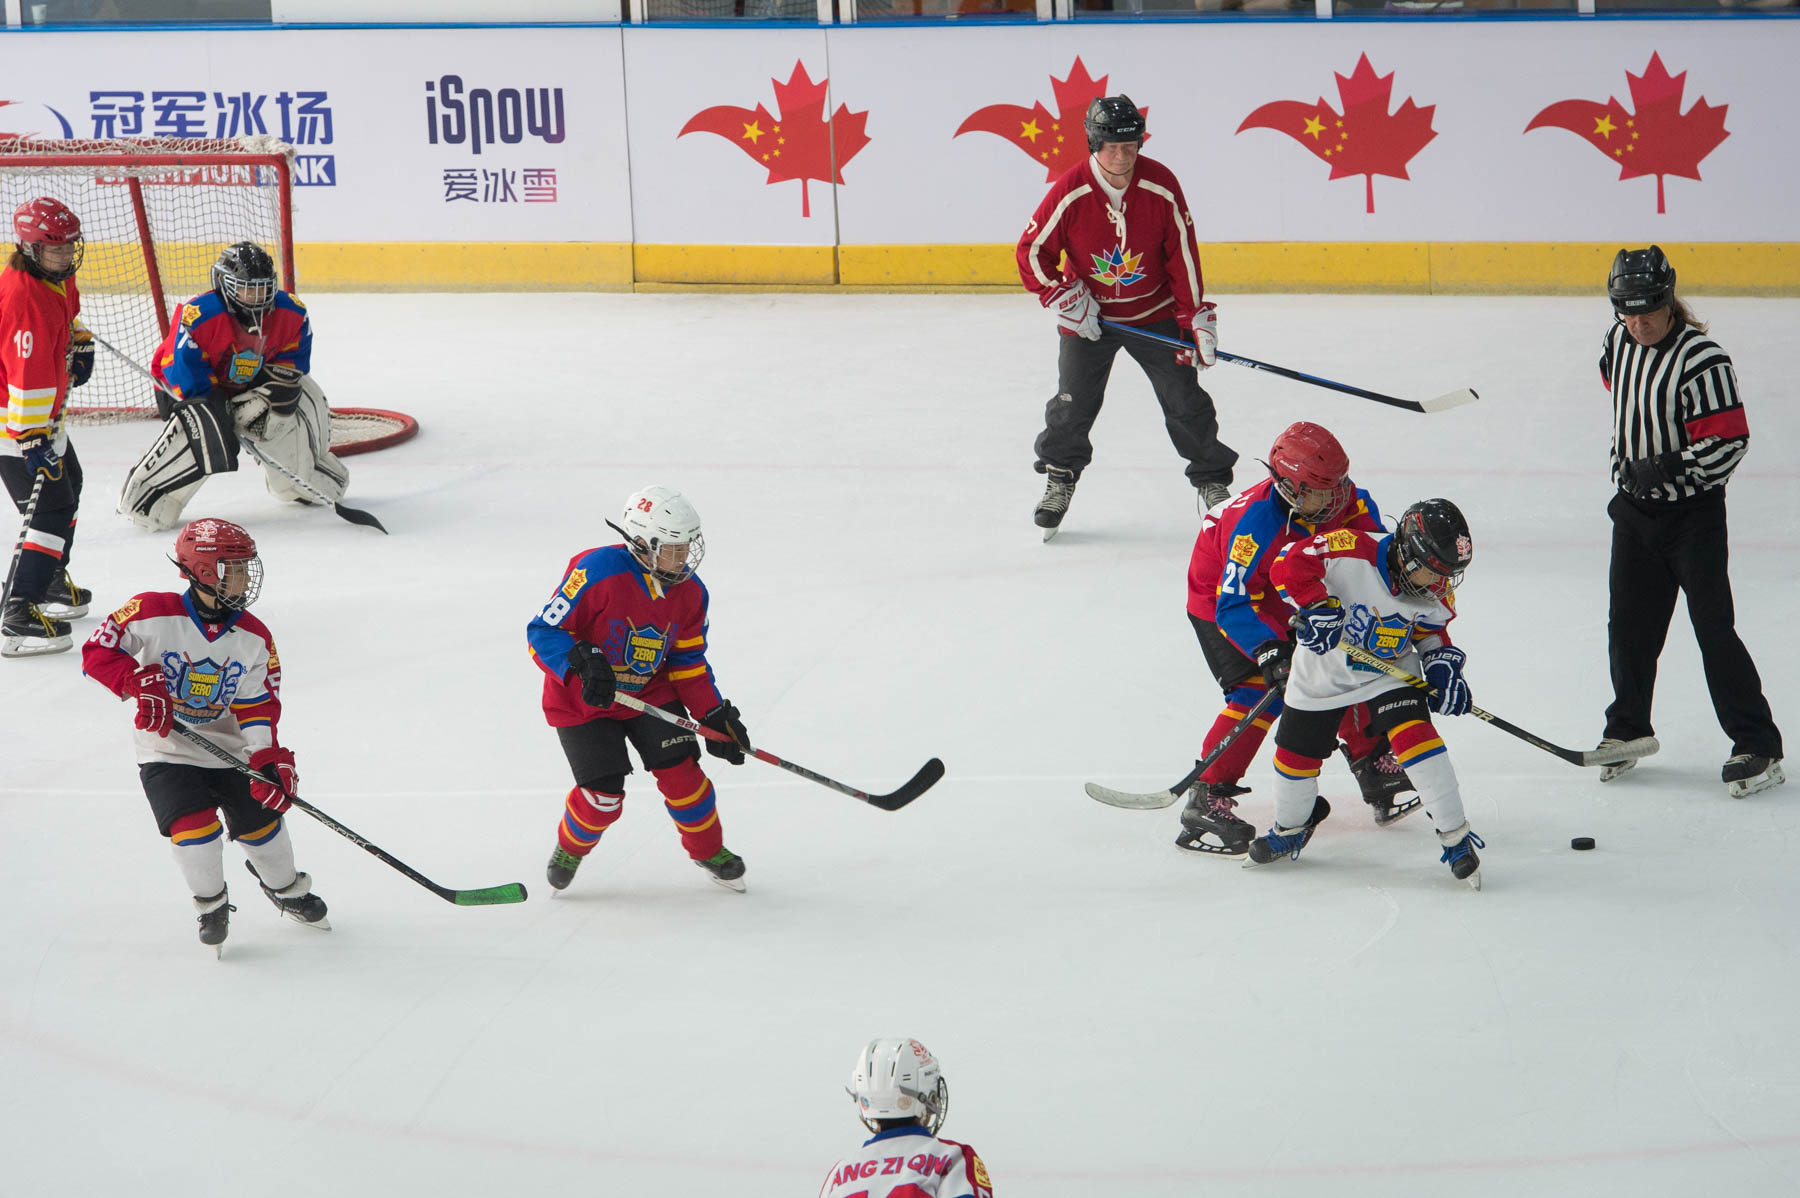 Later, in true Canadian fashion, His Excellency played a friendly game of hockey with a youth group in Beijing.